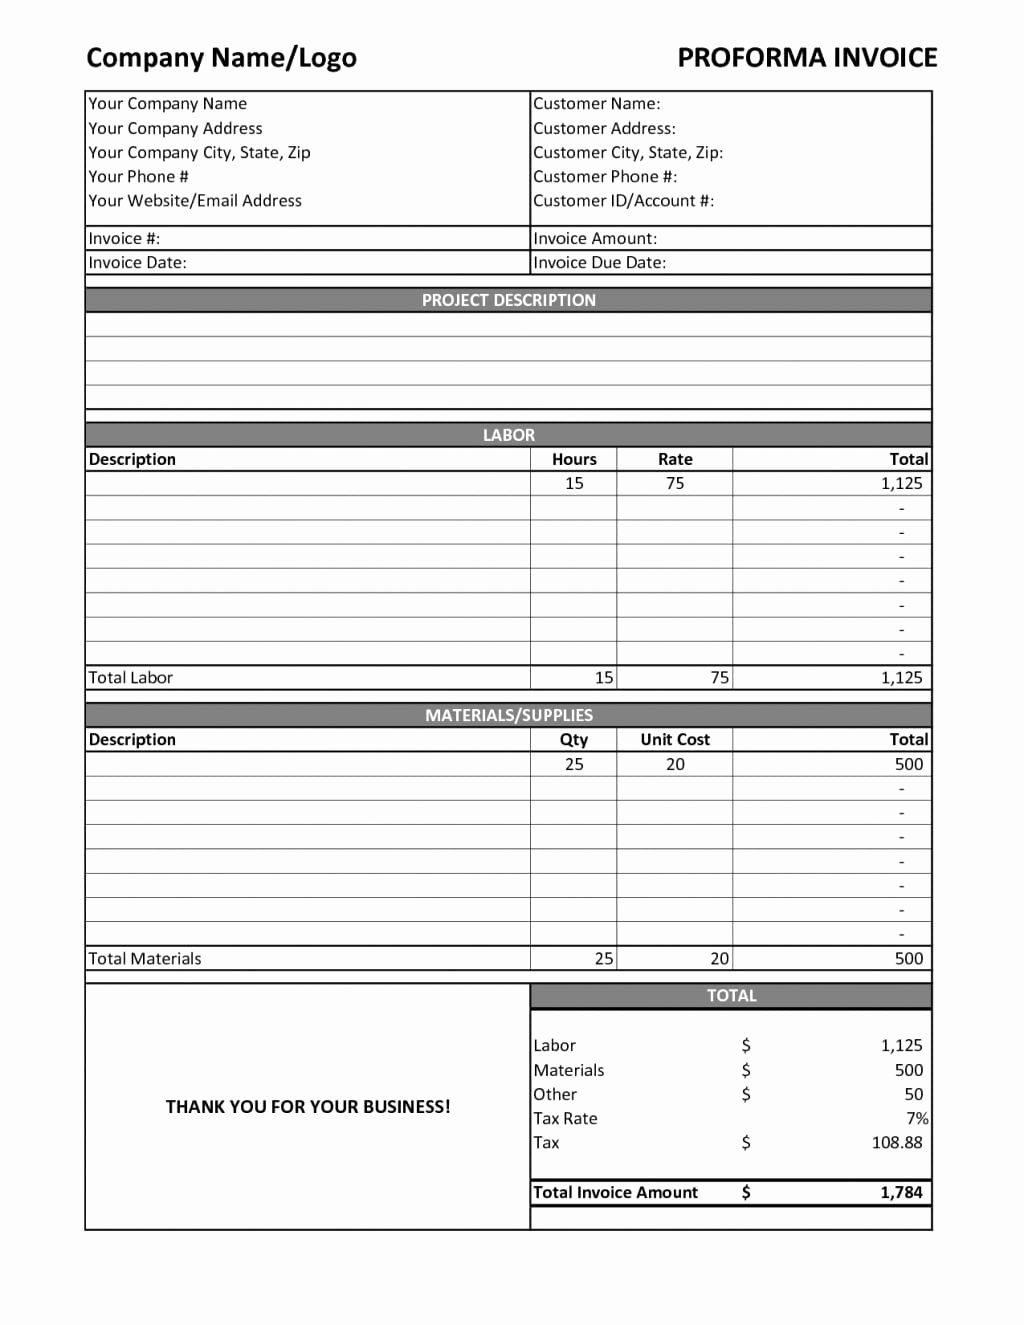 Labor Invoice Template Excel Inspirational Contract Labor Invoice Template Excelxo